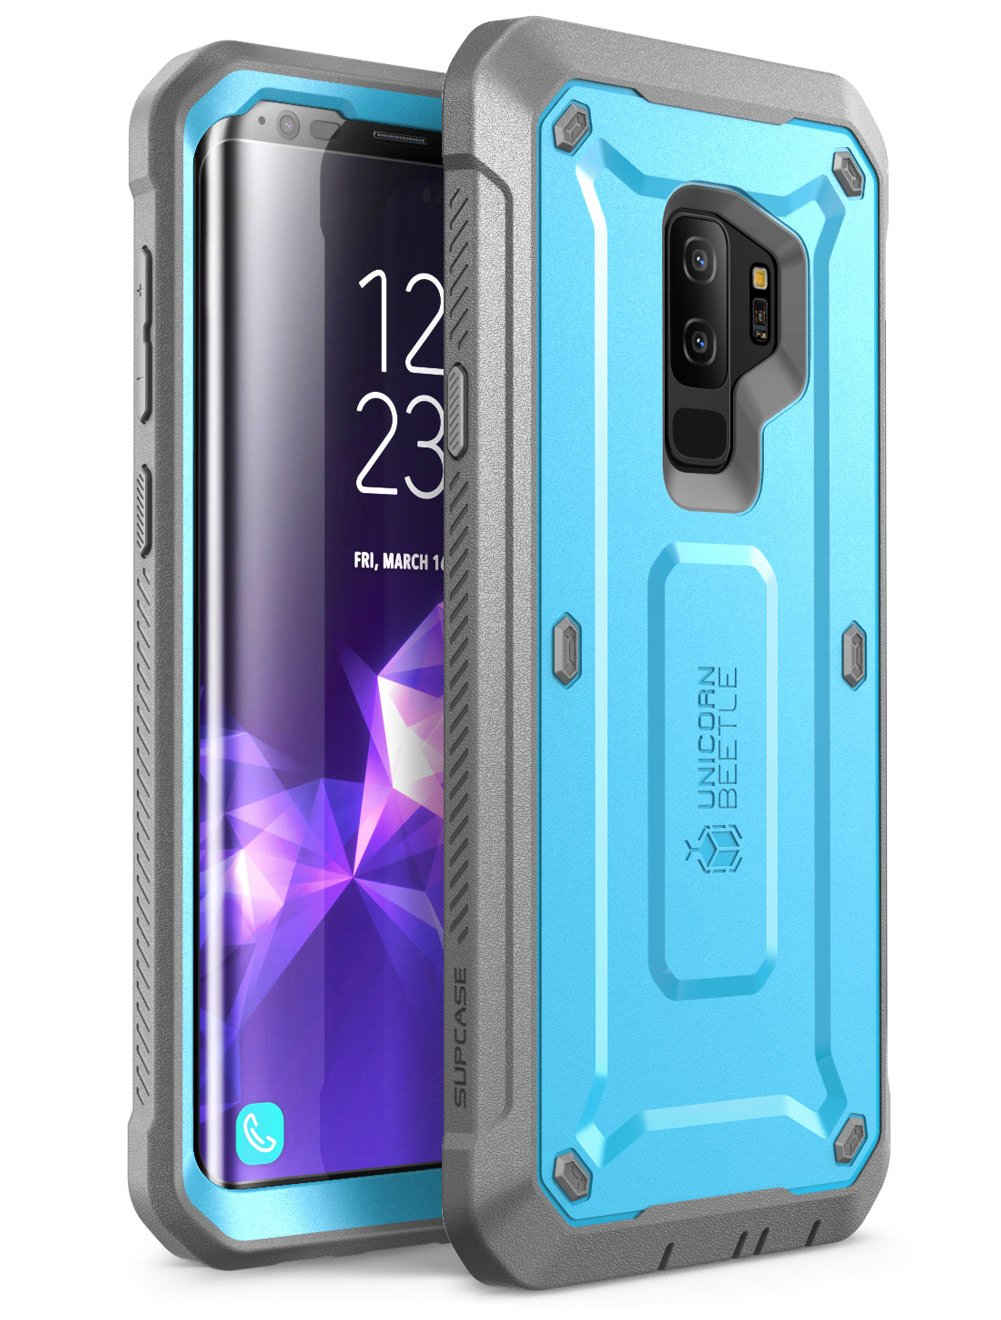 brand new 2c0cc 6385d SUPCASE Unicorn Beetle Pro Series Case Designed for Samsung Galaxy S9+  Plus, with Built-in Screen Protector Full-Body Rugged Holster Case for  Galaxy ...